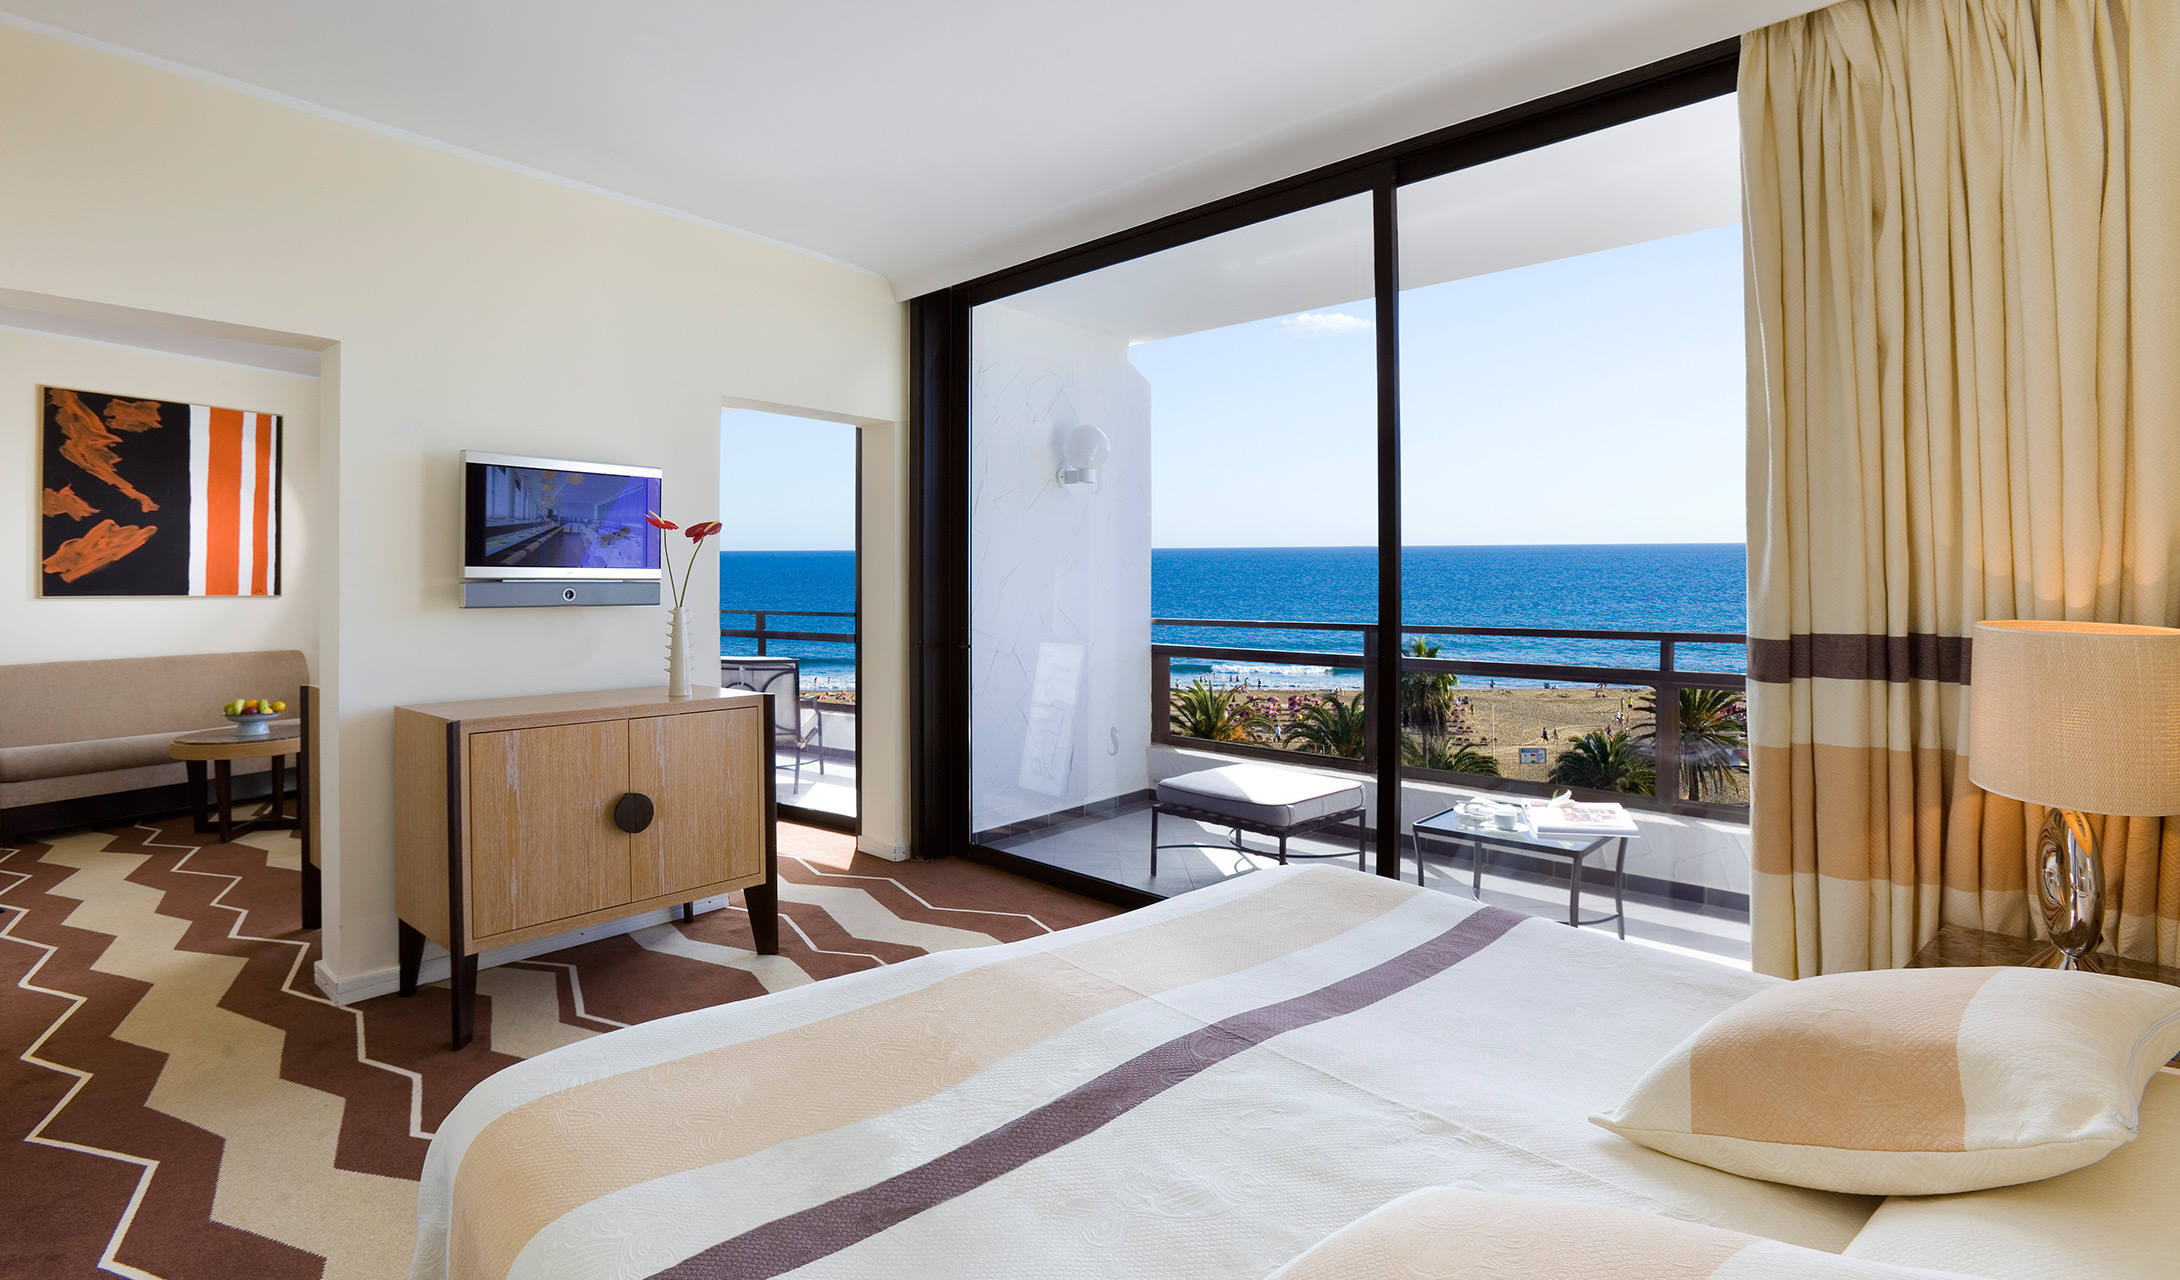 Seaside palm beach maspalomas spain design hotels for Designhotel q